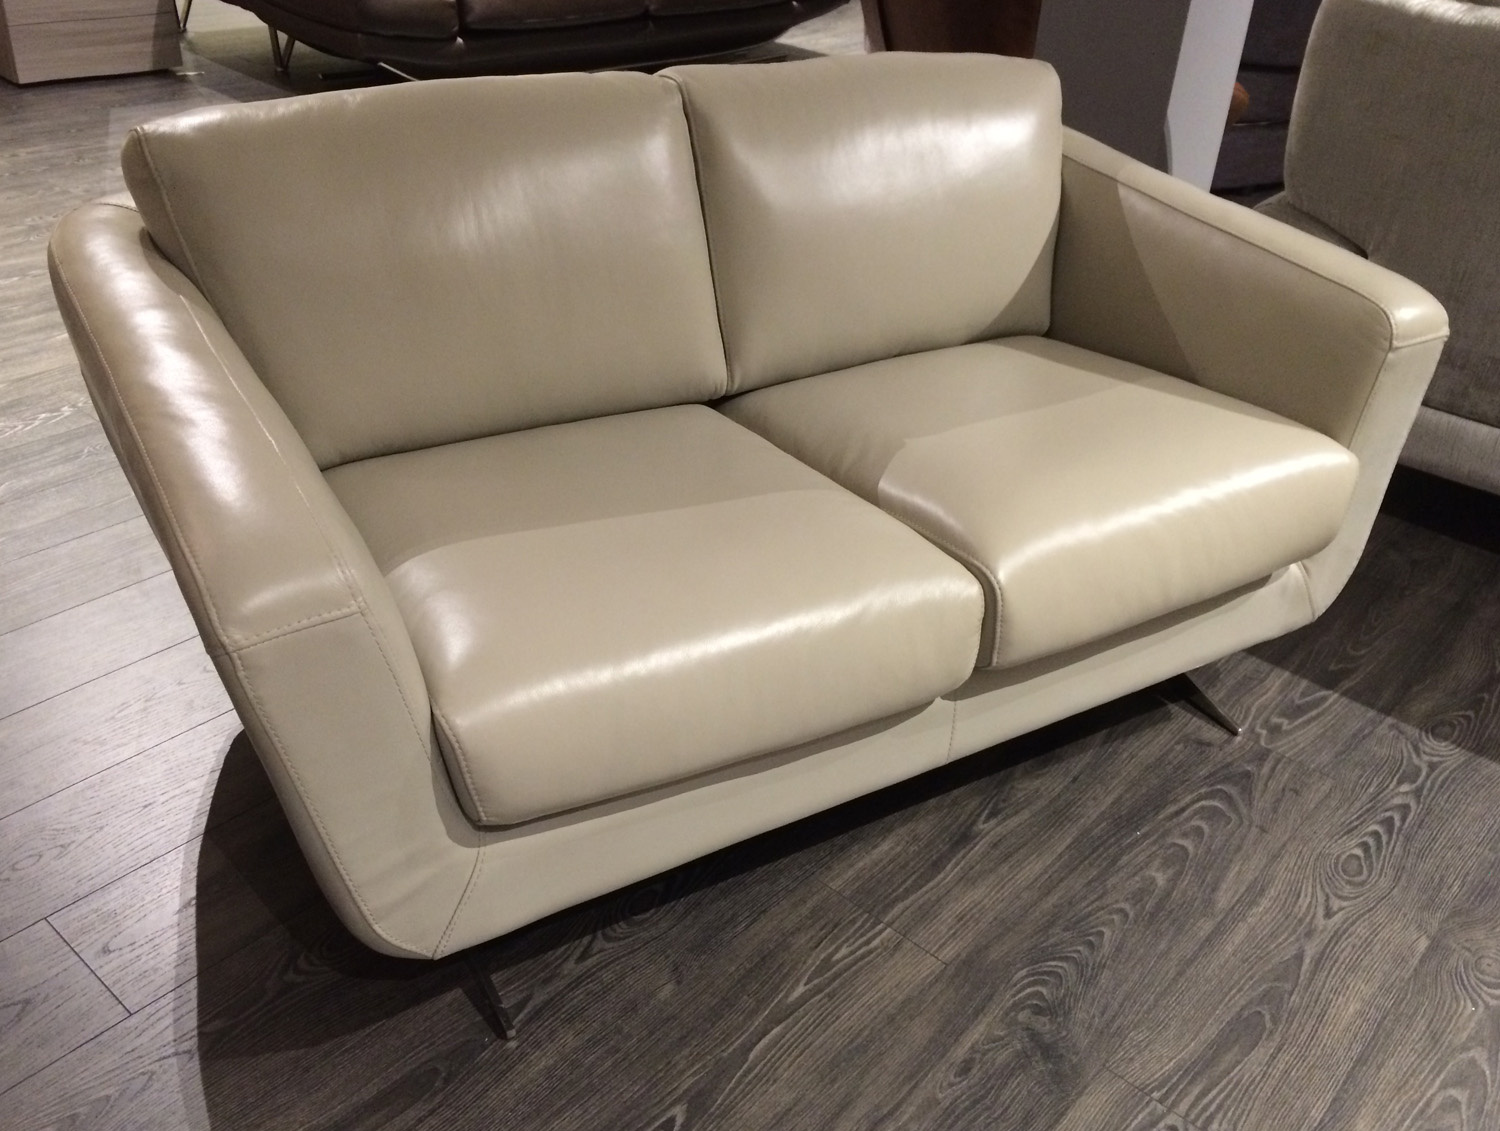 Caruso 2 Seater Grey Sofa - EX DISPLAY